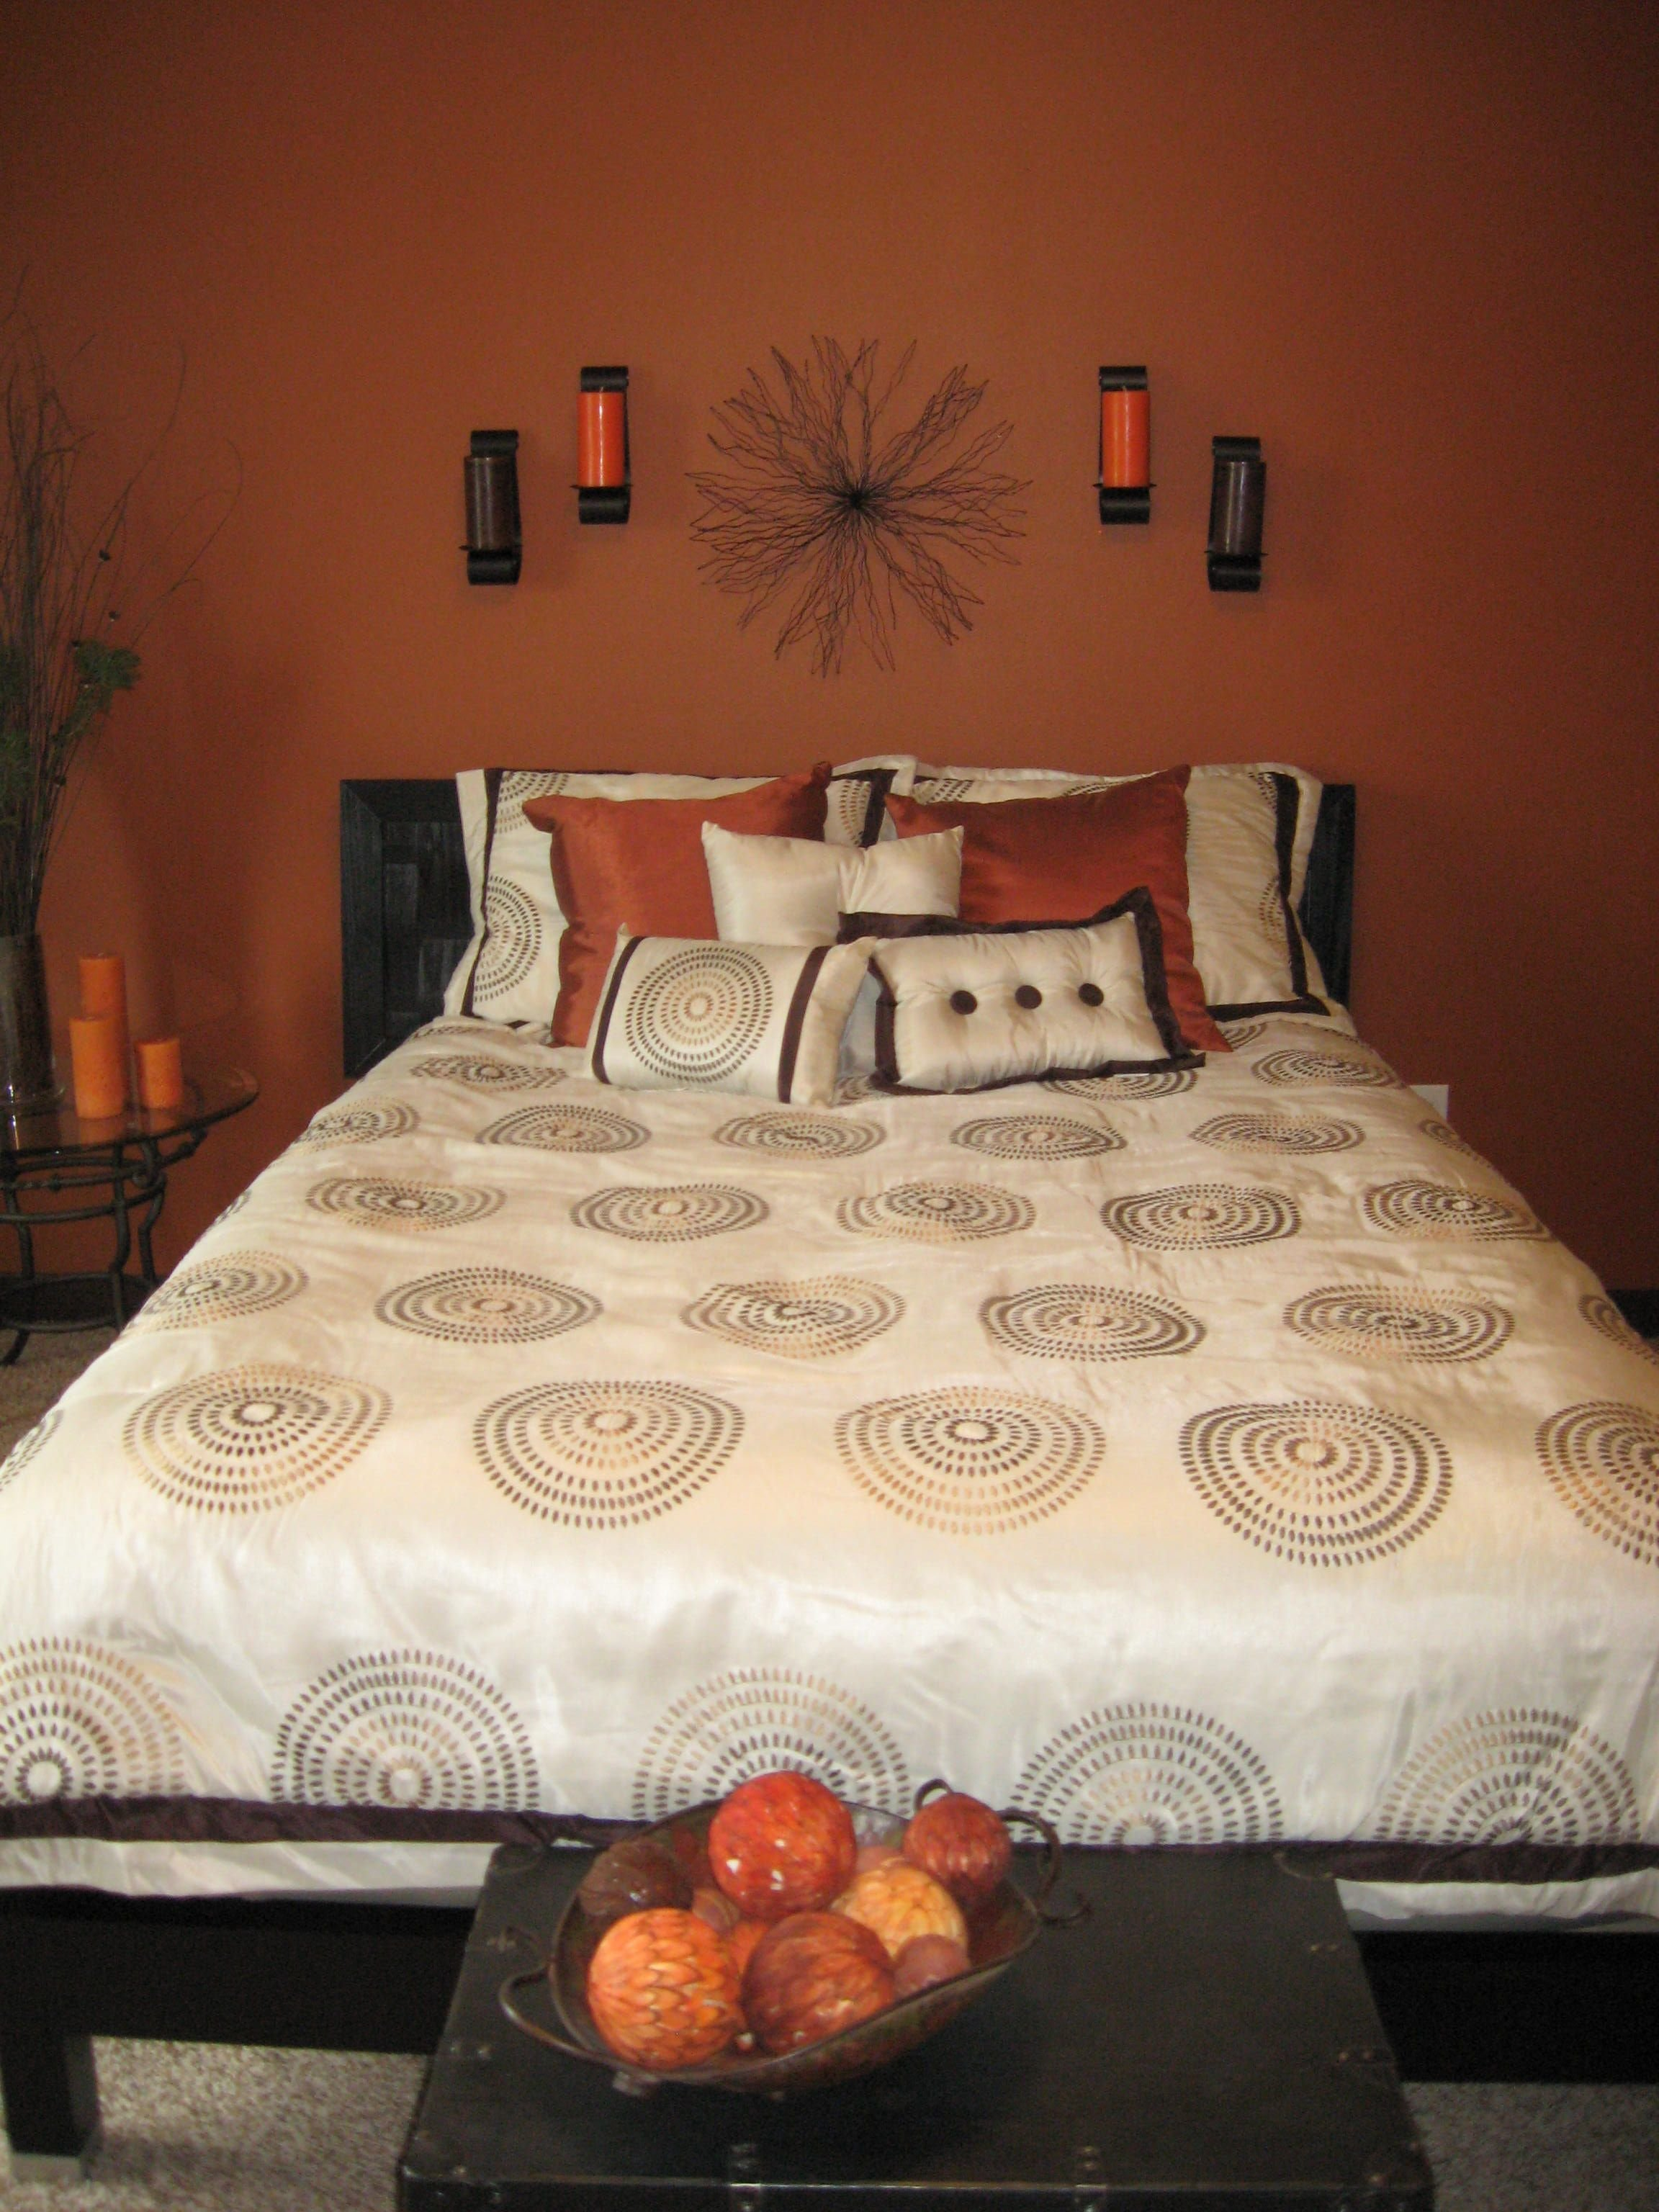 Best Burnt Orange Wall Color For Bedroom Home Decor In 2019 With Pictures